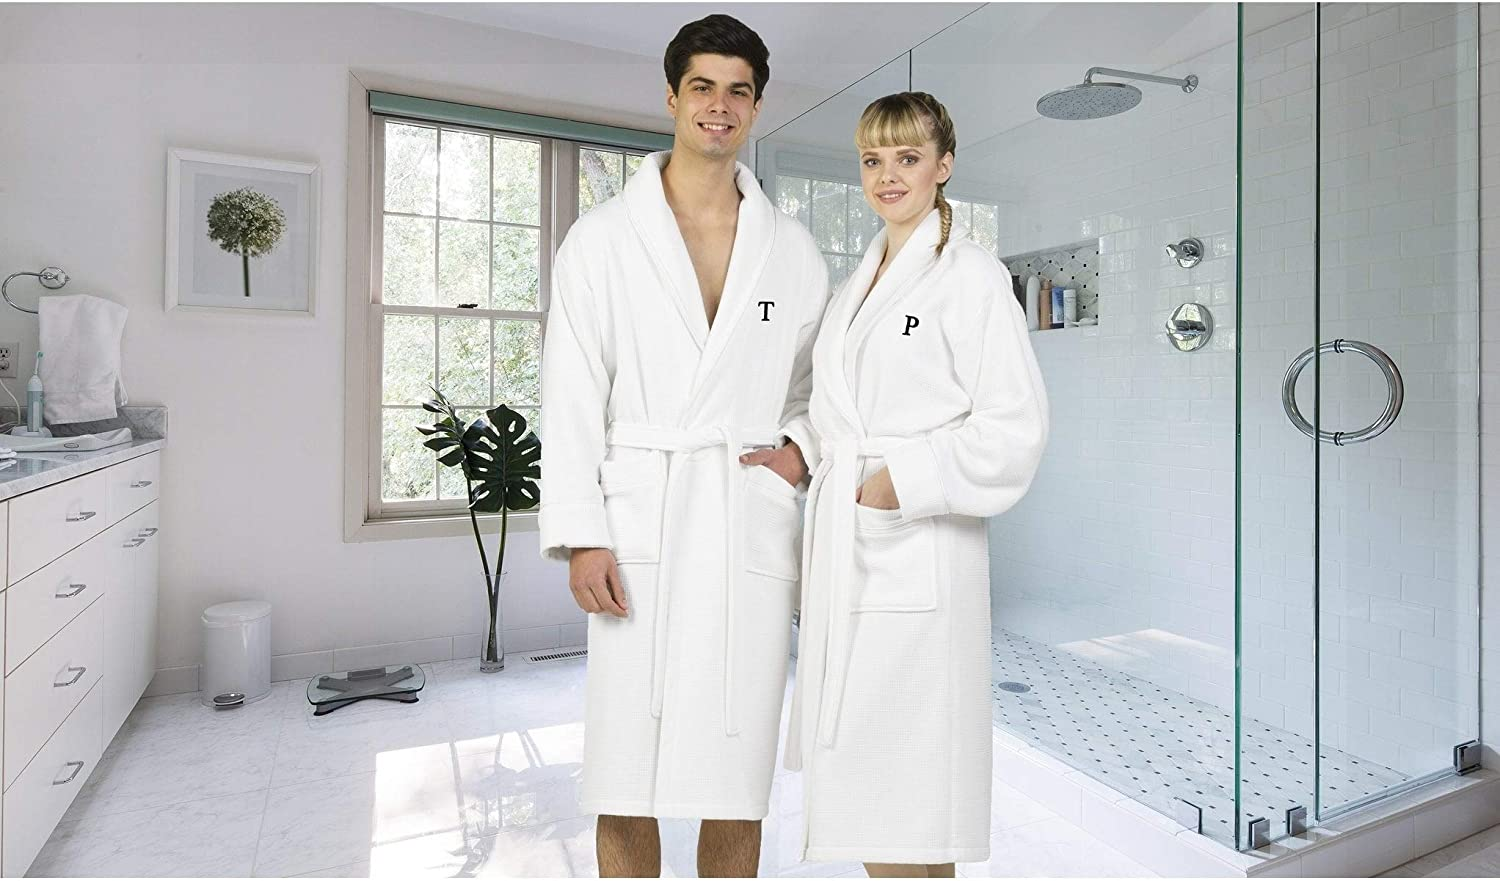 Authentic Hotel and Spa White Unisex Turkish Cotton Waffle Weave Terry Bath Robe with Black Block Monogram M L-XL